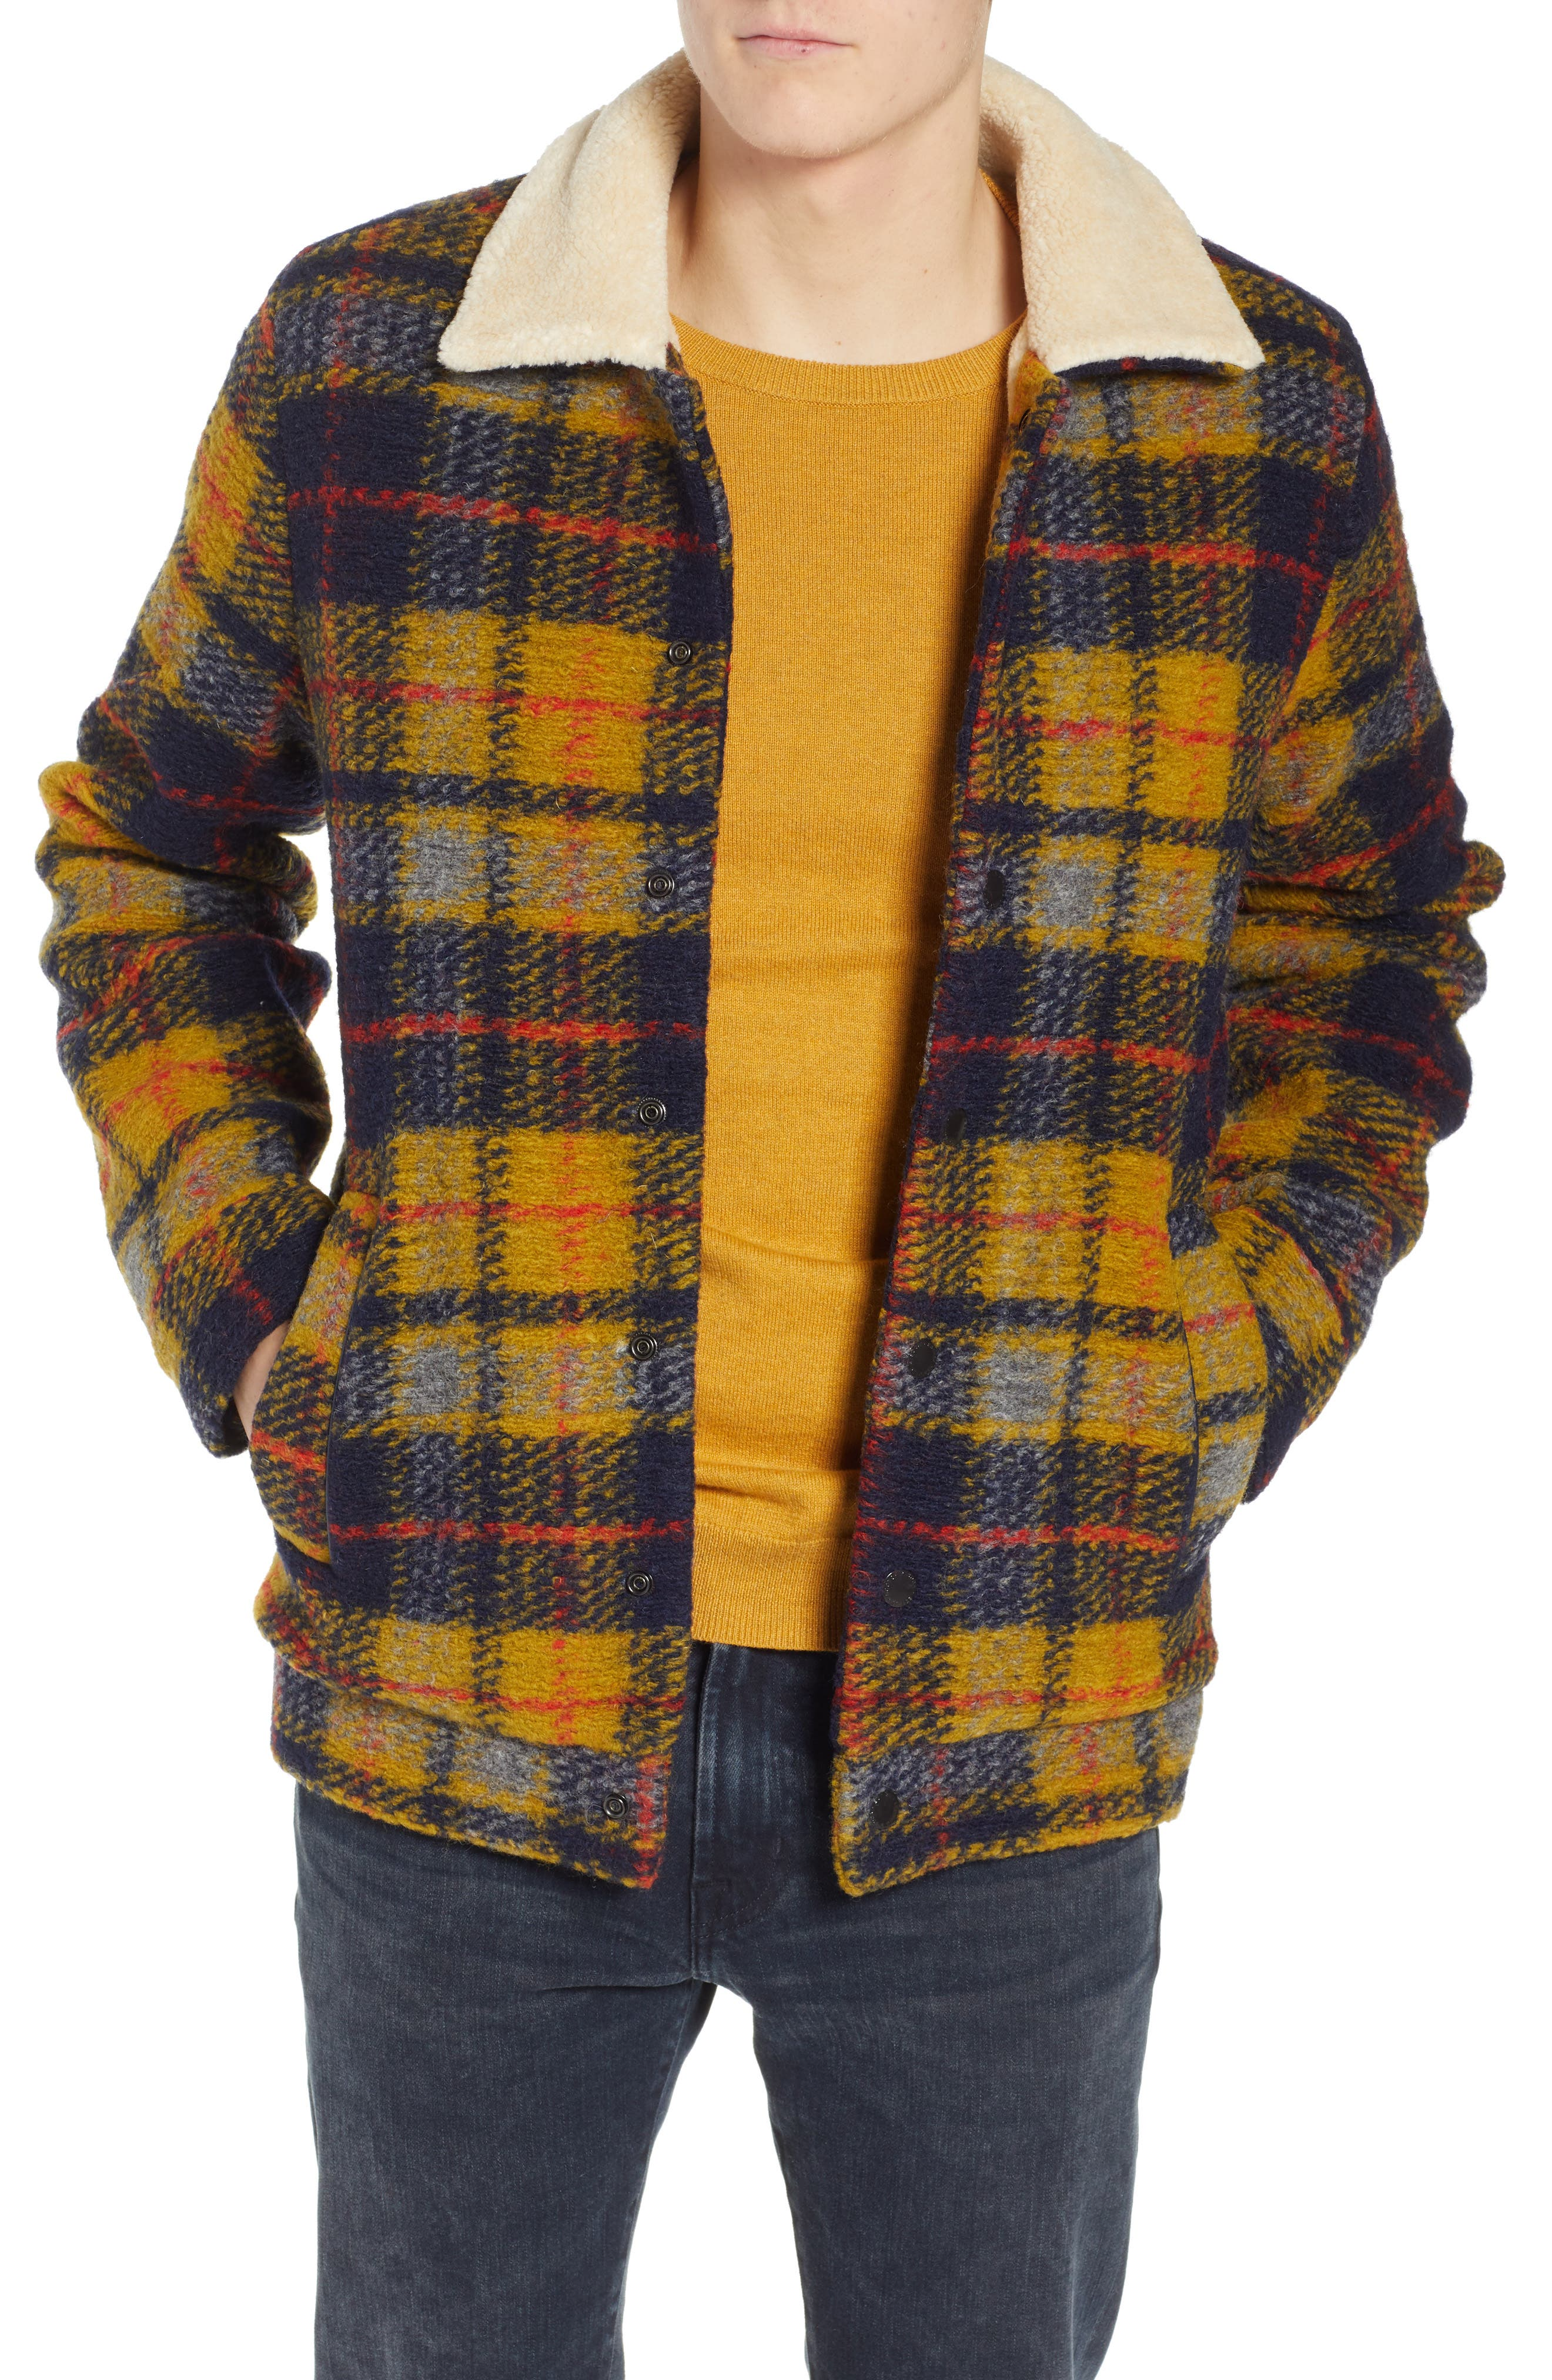 Men's Vintage Style Coats and Jackets Mens Scotch  Soda Plaid Faux Shearling Lined Wool Blend Trucker Jacket $325.00 AT vintagedancer.com